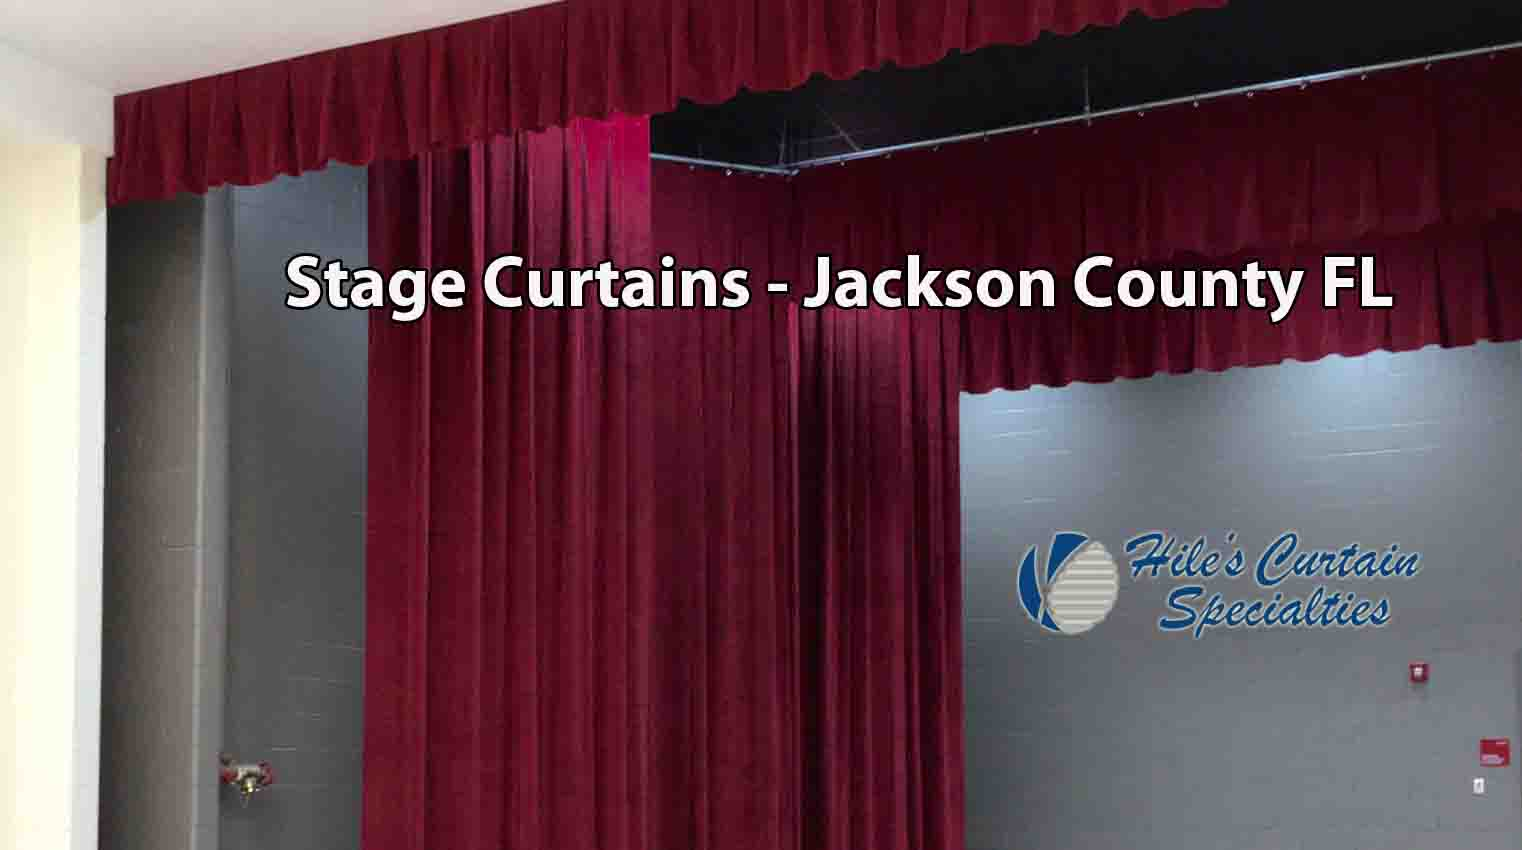 Stage Curtains - Jackson County FL